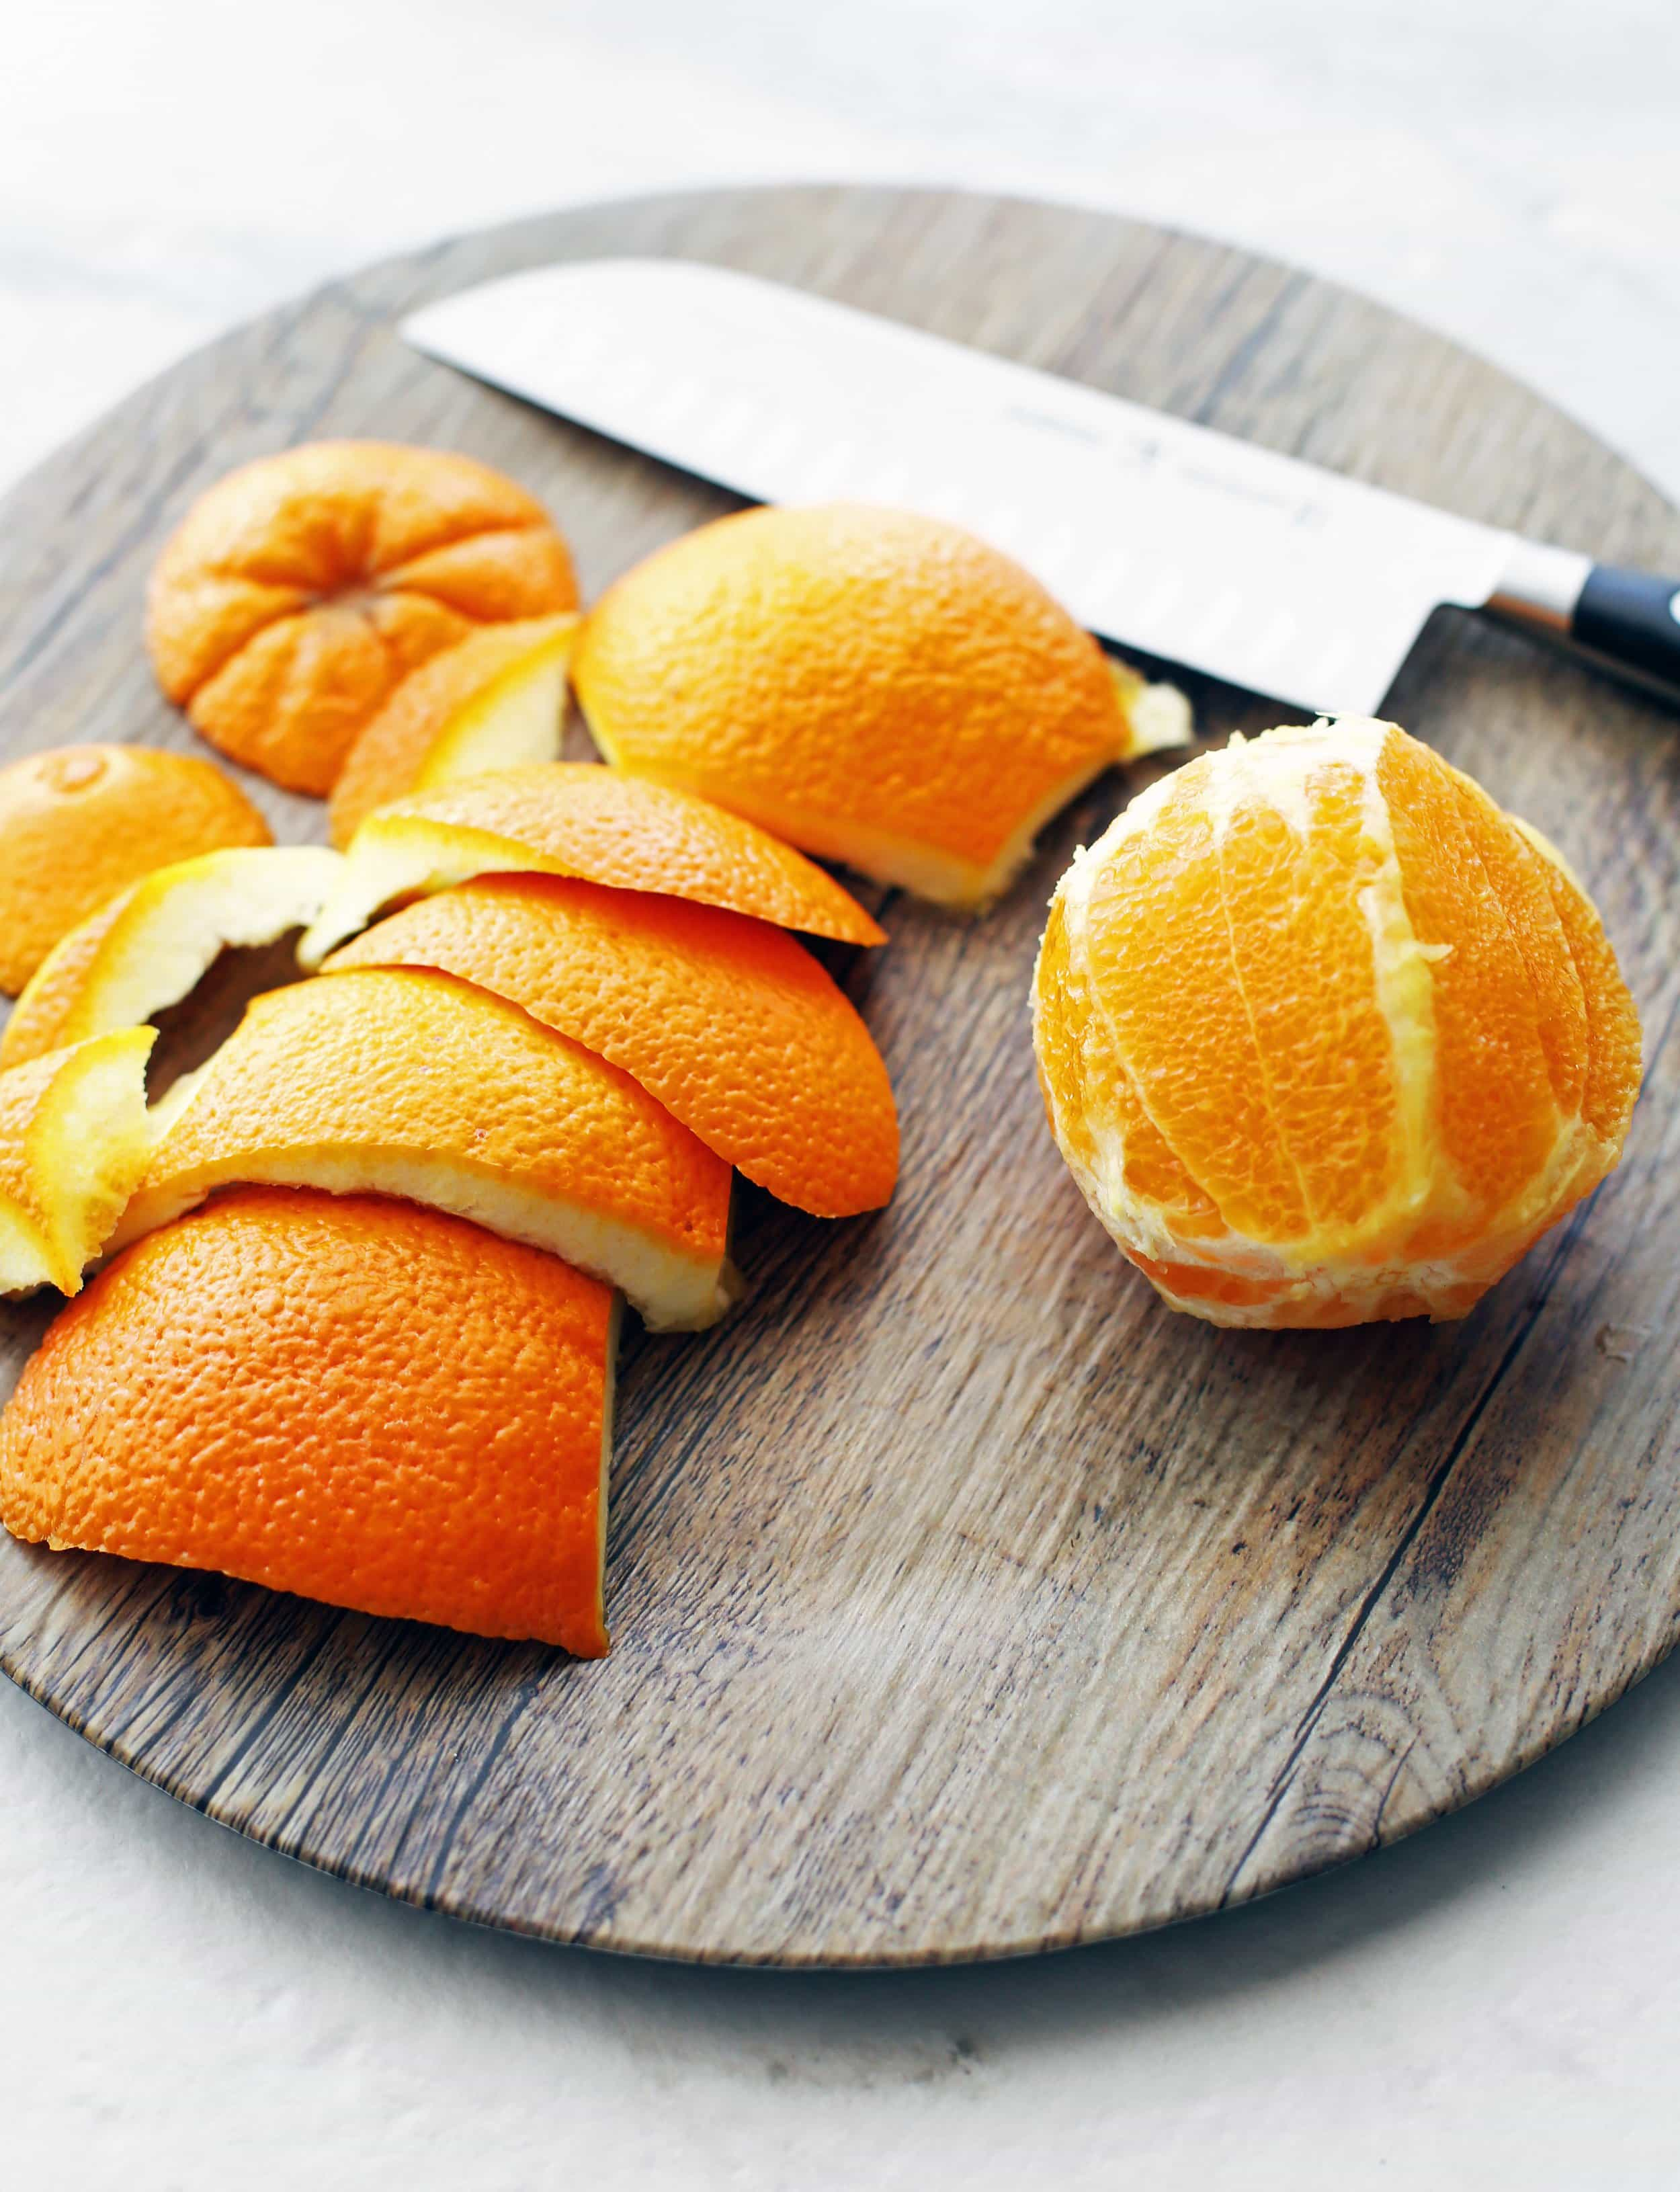 A cut and peeled navel orange and a large knife on a wooden platter.